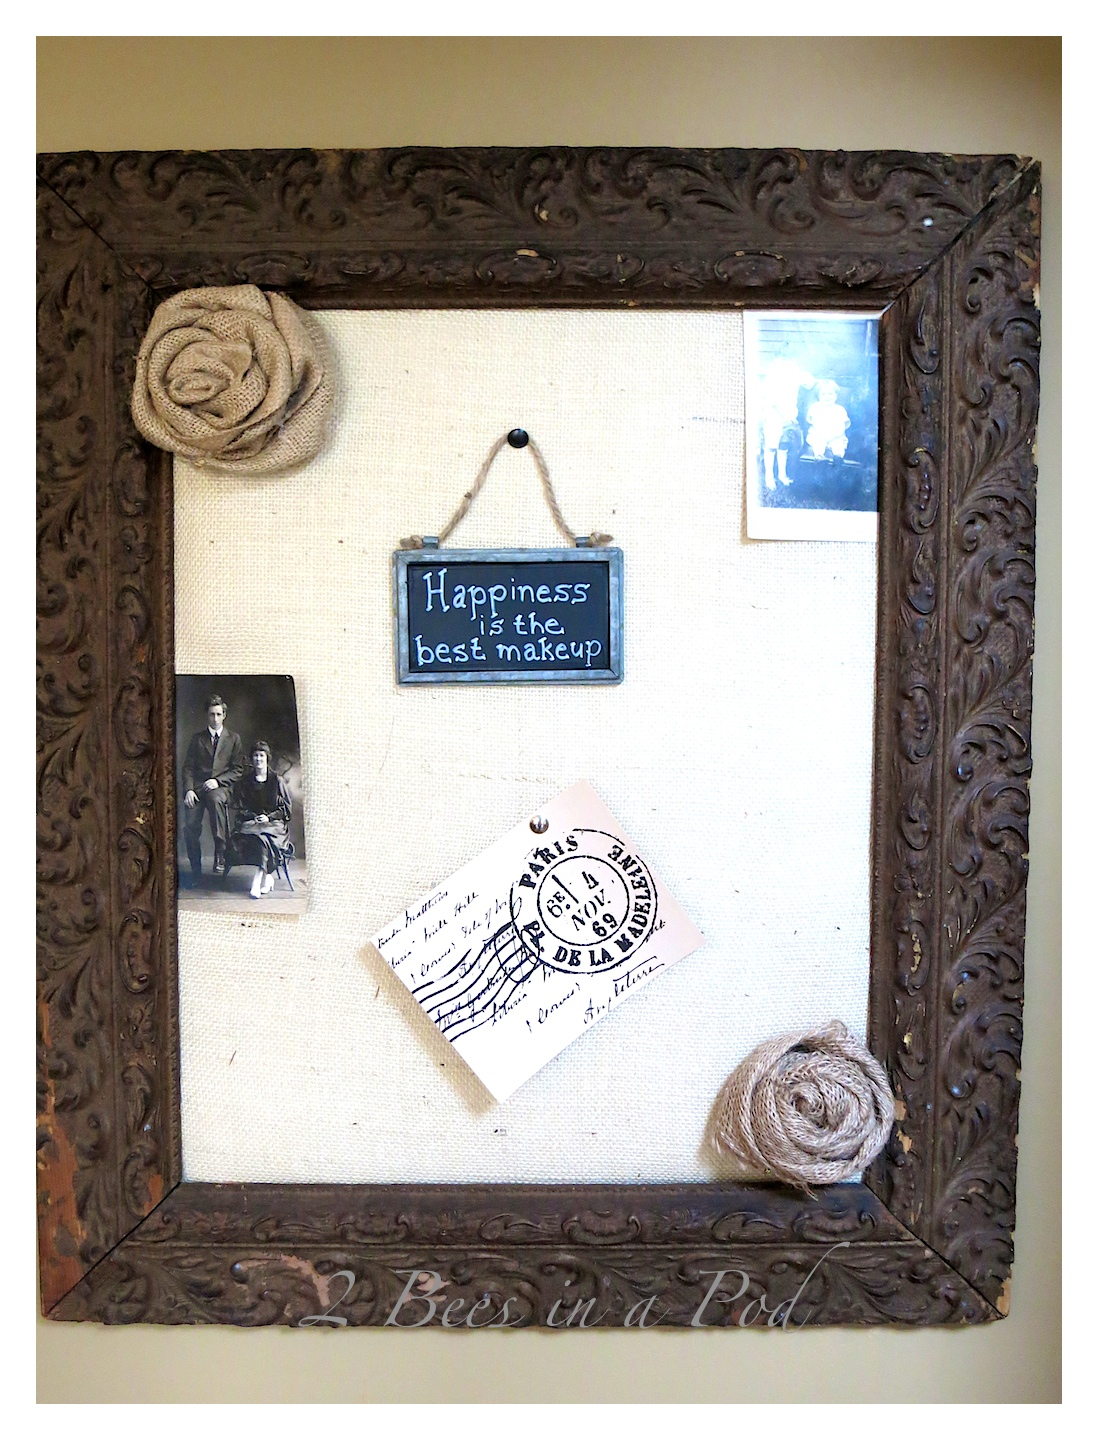 DIY burlap bulletin board. Made from a salvaged antique frame, burlap, foam board and batting. Cute decorated with vintage decor.